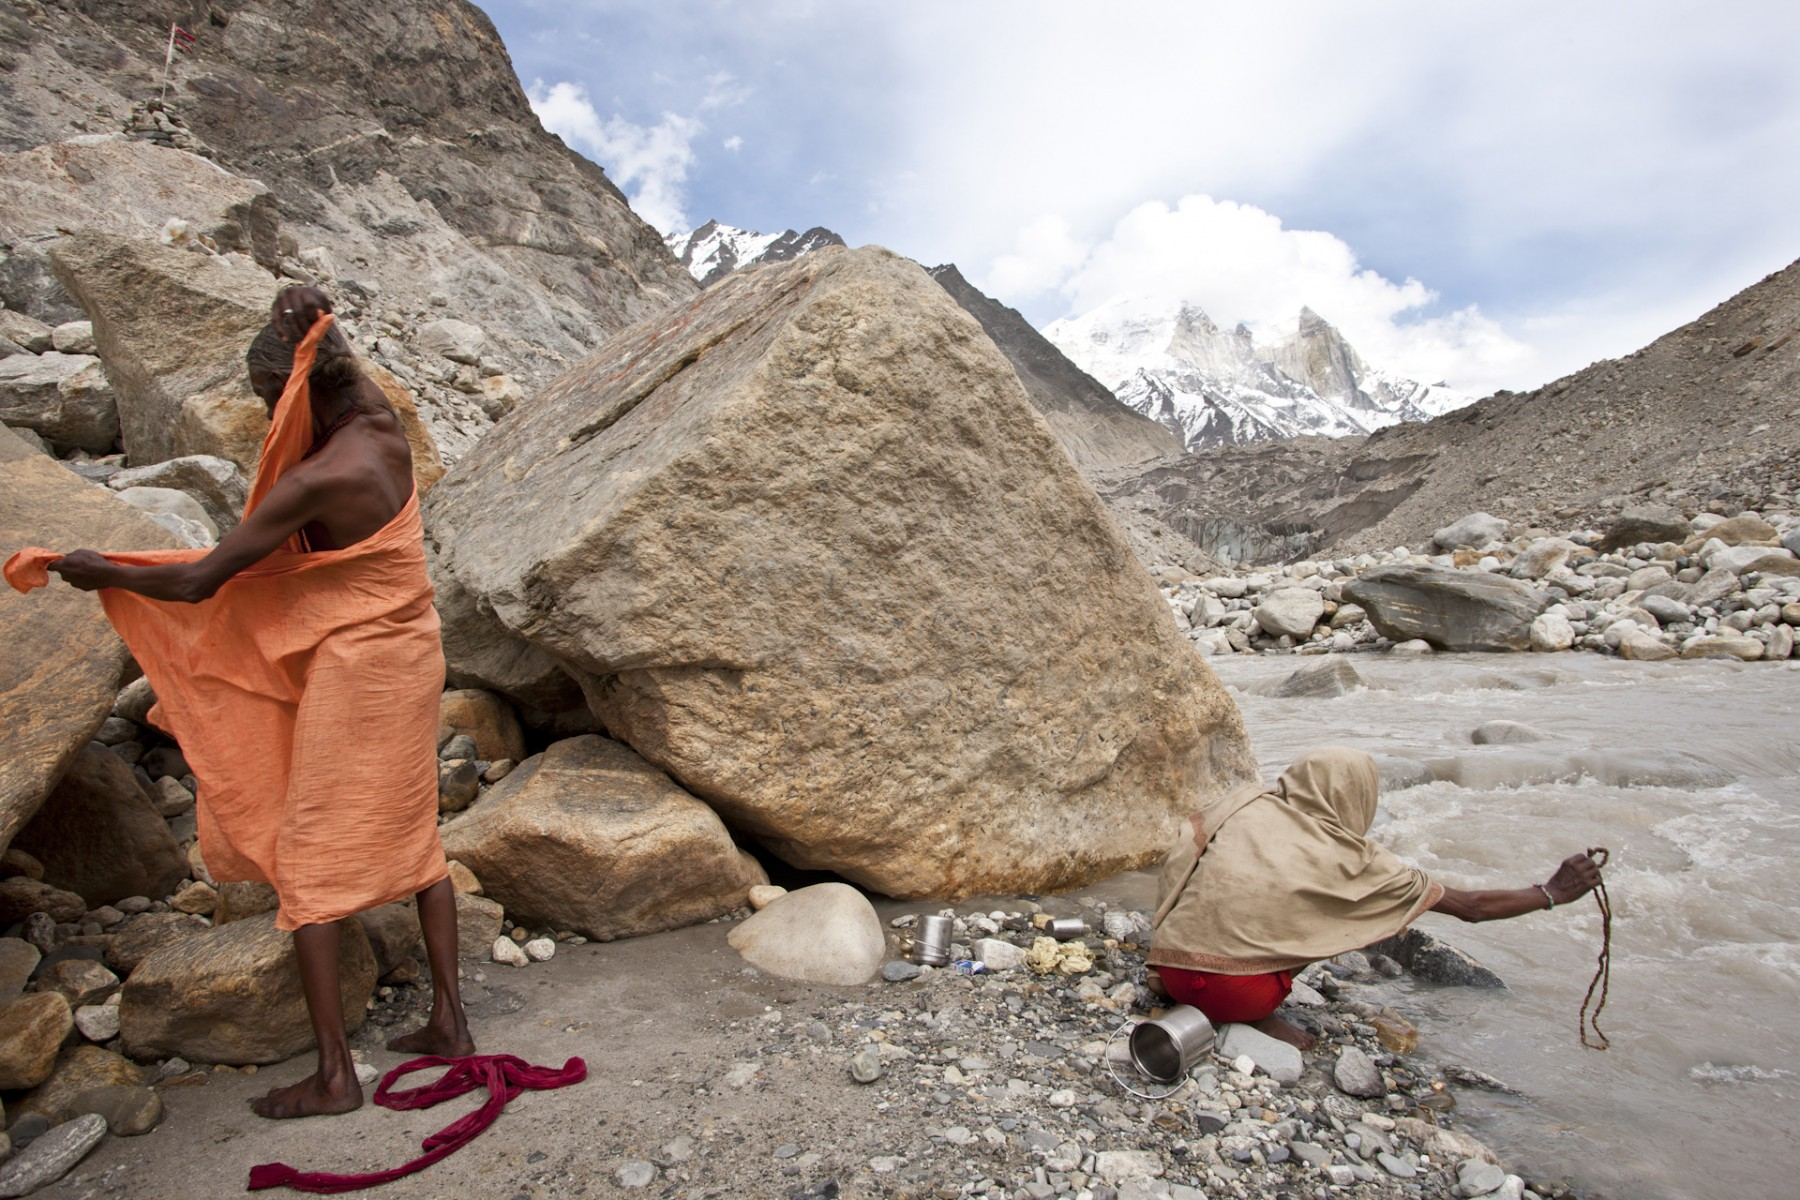 A pilgrim completes his personal ritual by dipping his mala in the sacred river while the other dresses after taking a bath.